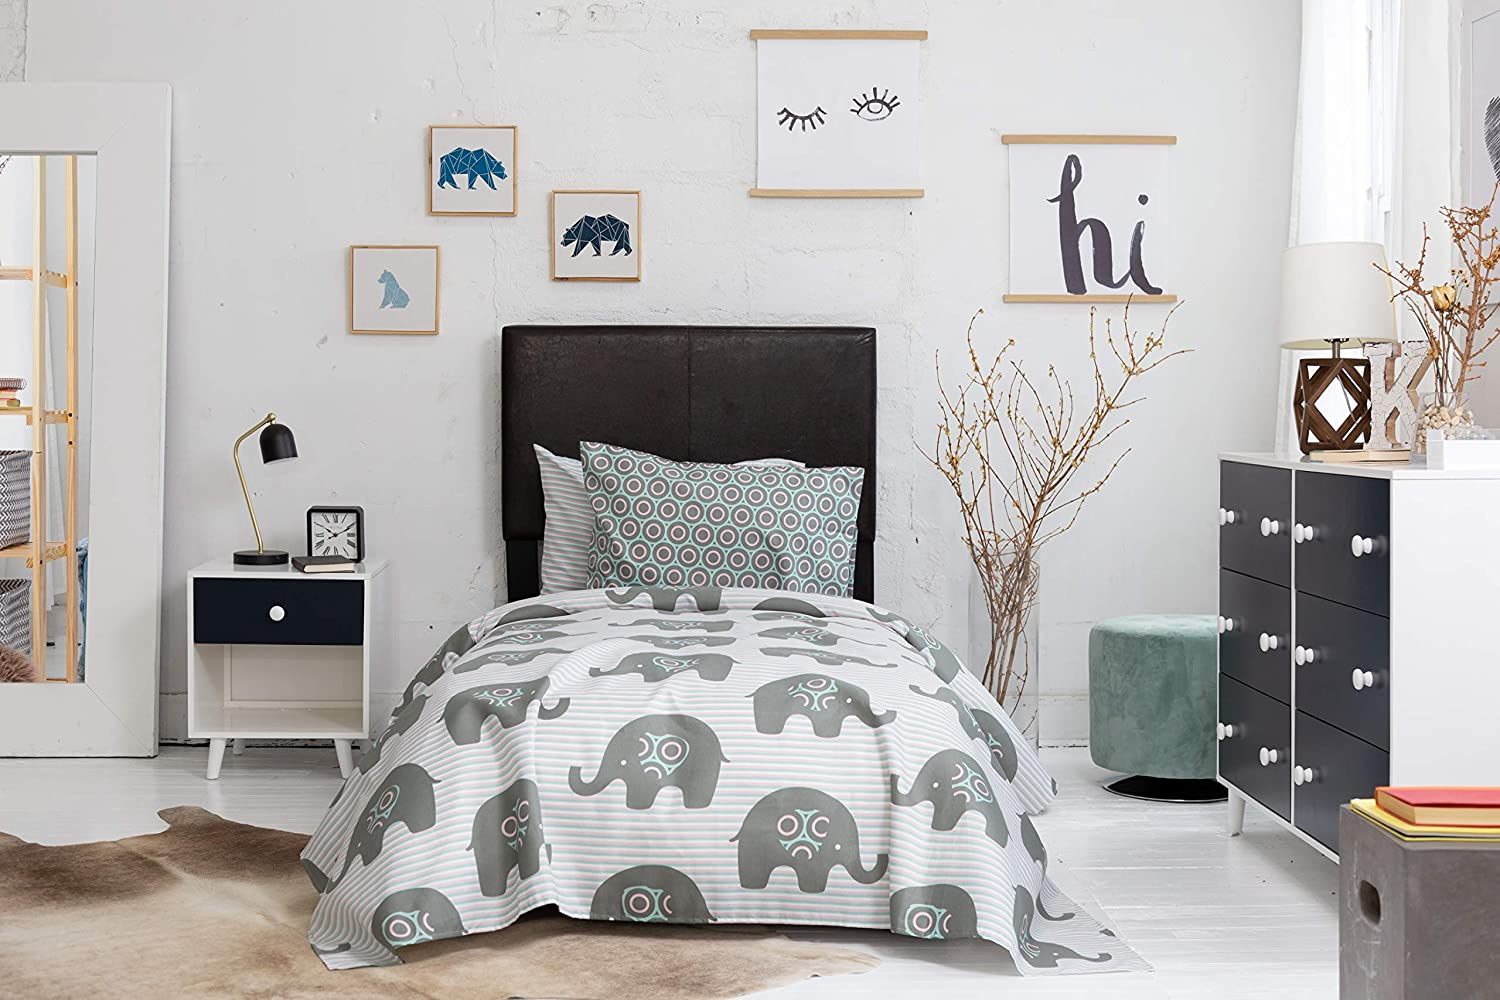 """2 Pillow Cases Double-Brushed Microfiber Starry Night Sky Print 4 Pc Gender Neutral Kids Bedding Set 1 Flat /& 1 Fitted Sheet Durable Super-Soft Chital Unisex Full Bed Sheets 15/"""" Deep"""